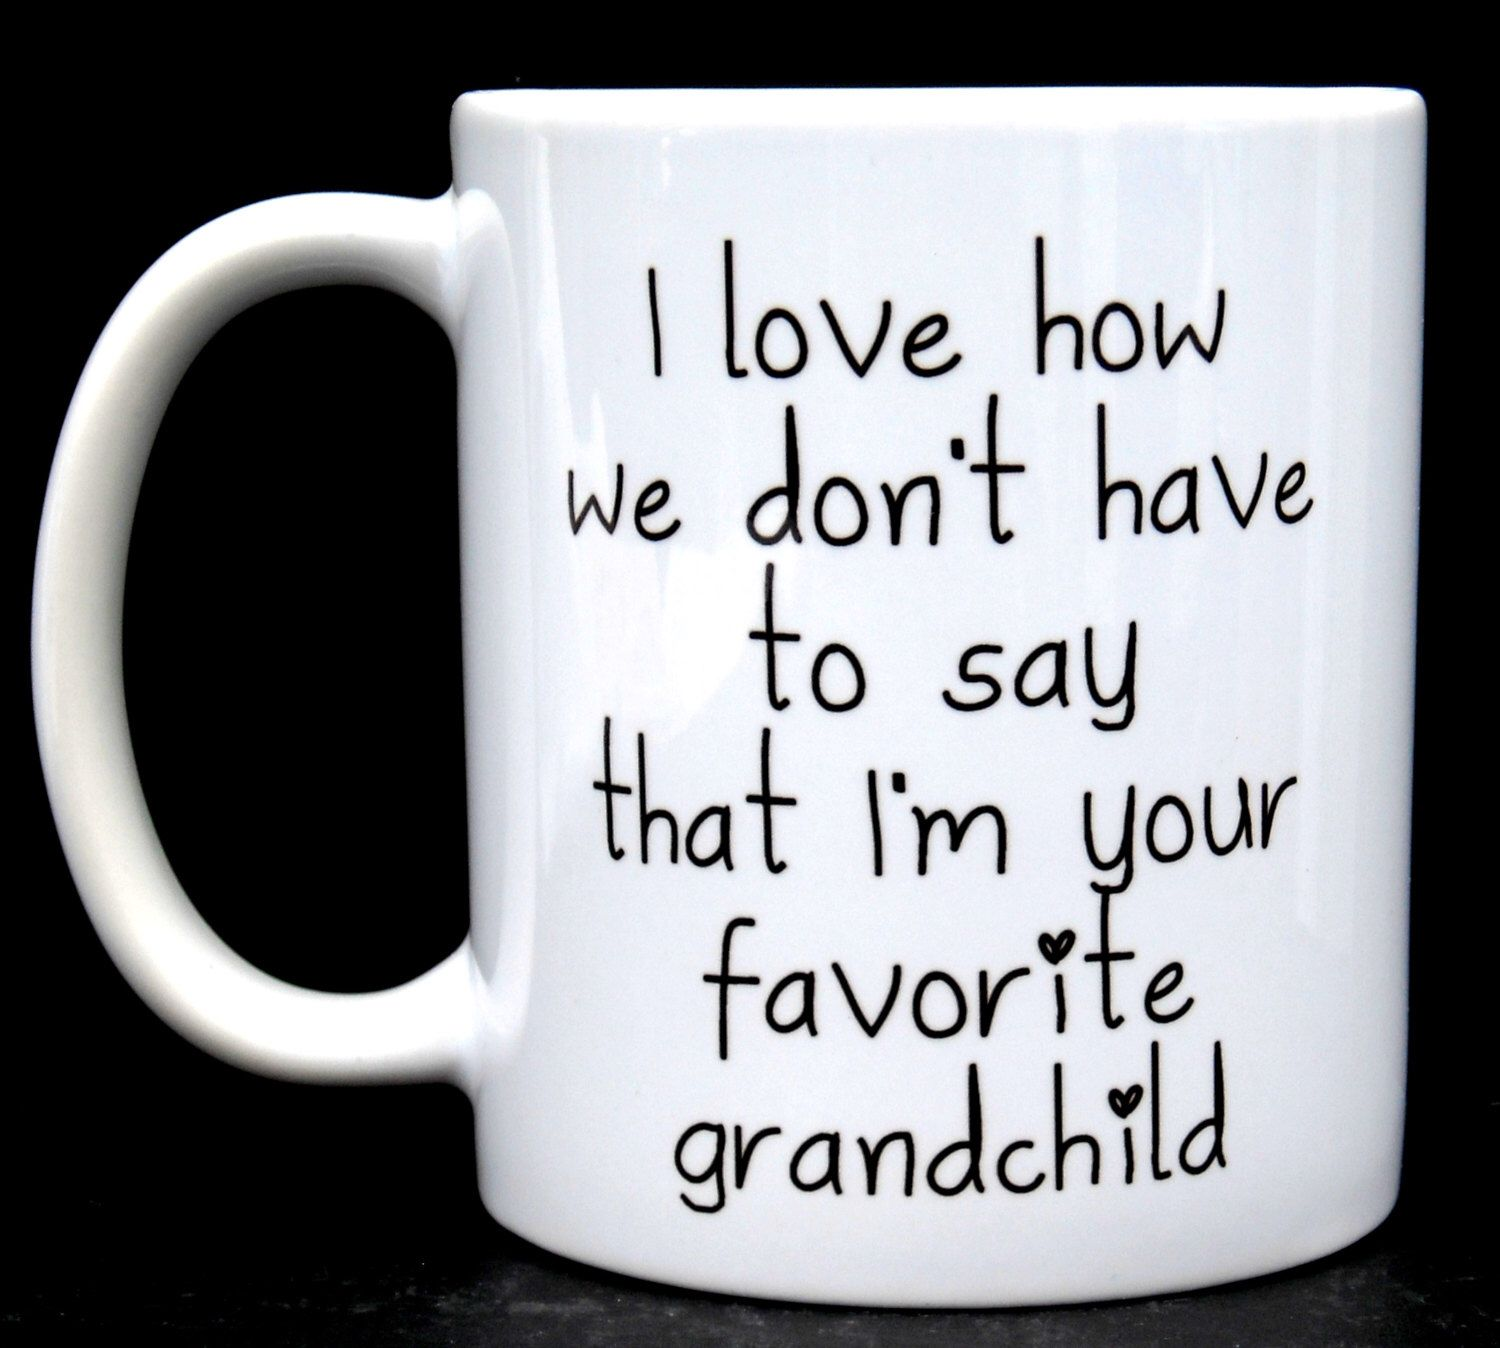 Grandfather gift grandpa gift gift for grandpa gift for grandma grandfather gift grandpa gift gift for grandpa gift for grandma easter gift gift for grandparents easter gift idea grandpa mug gift by jandawares on negle Image collections